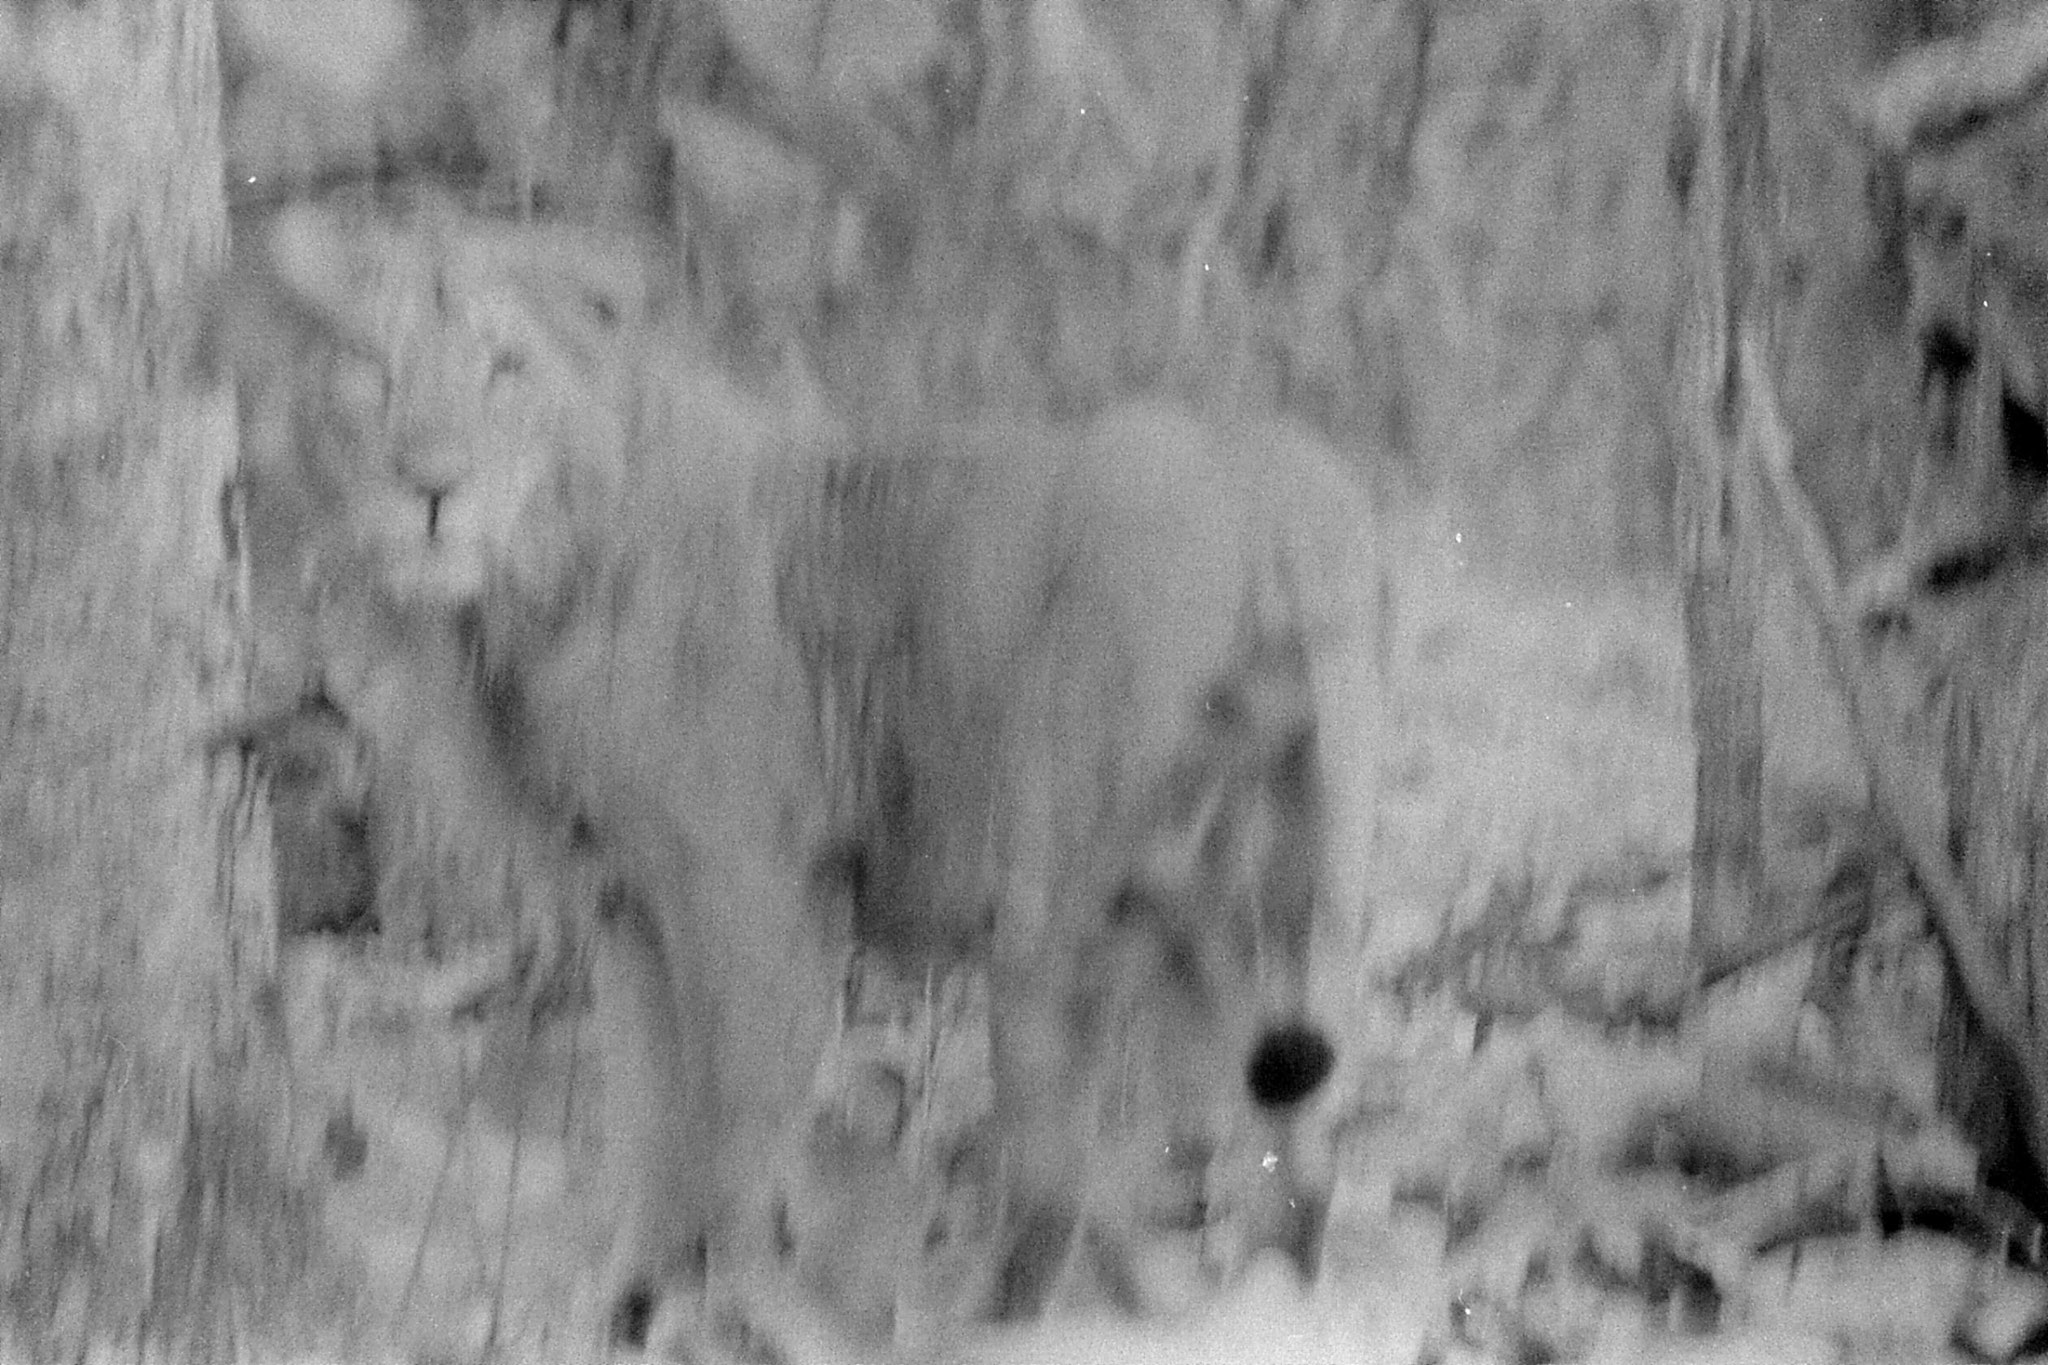 13/12/89: 7: Lions early morning